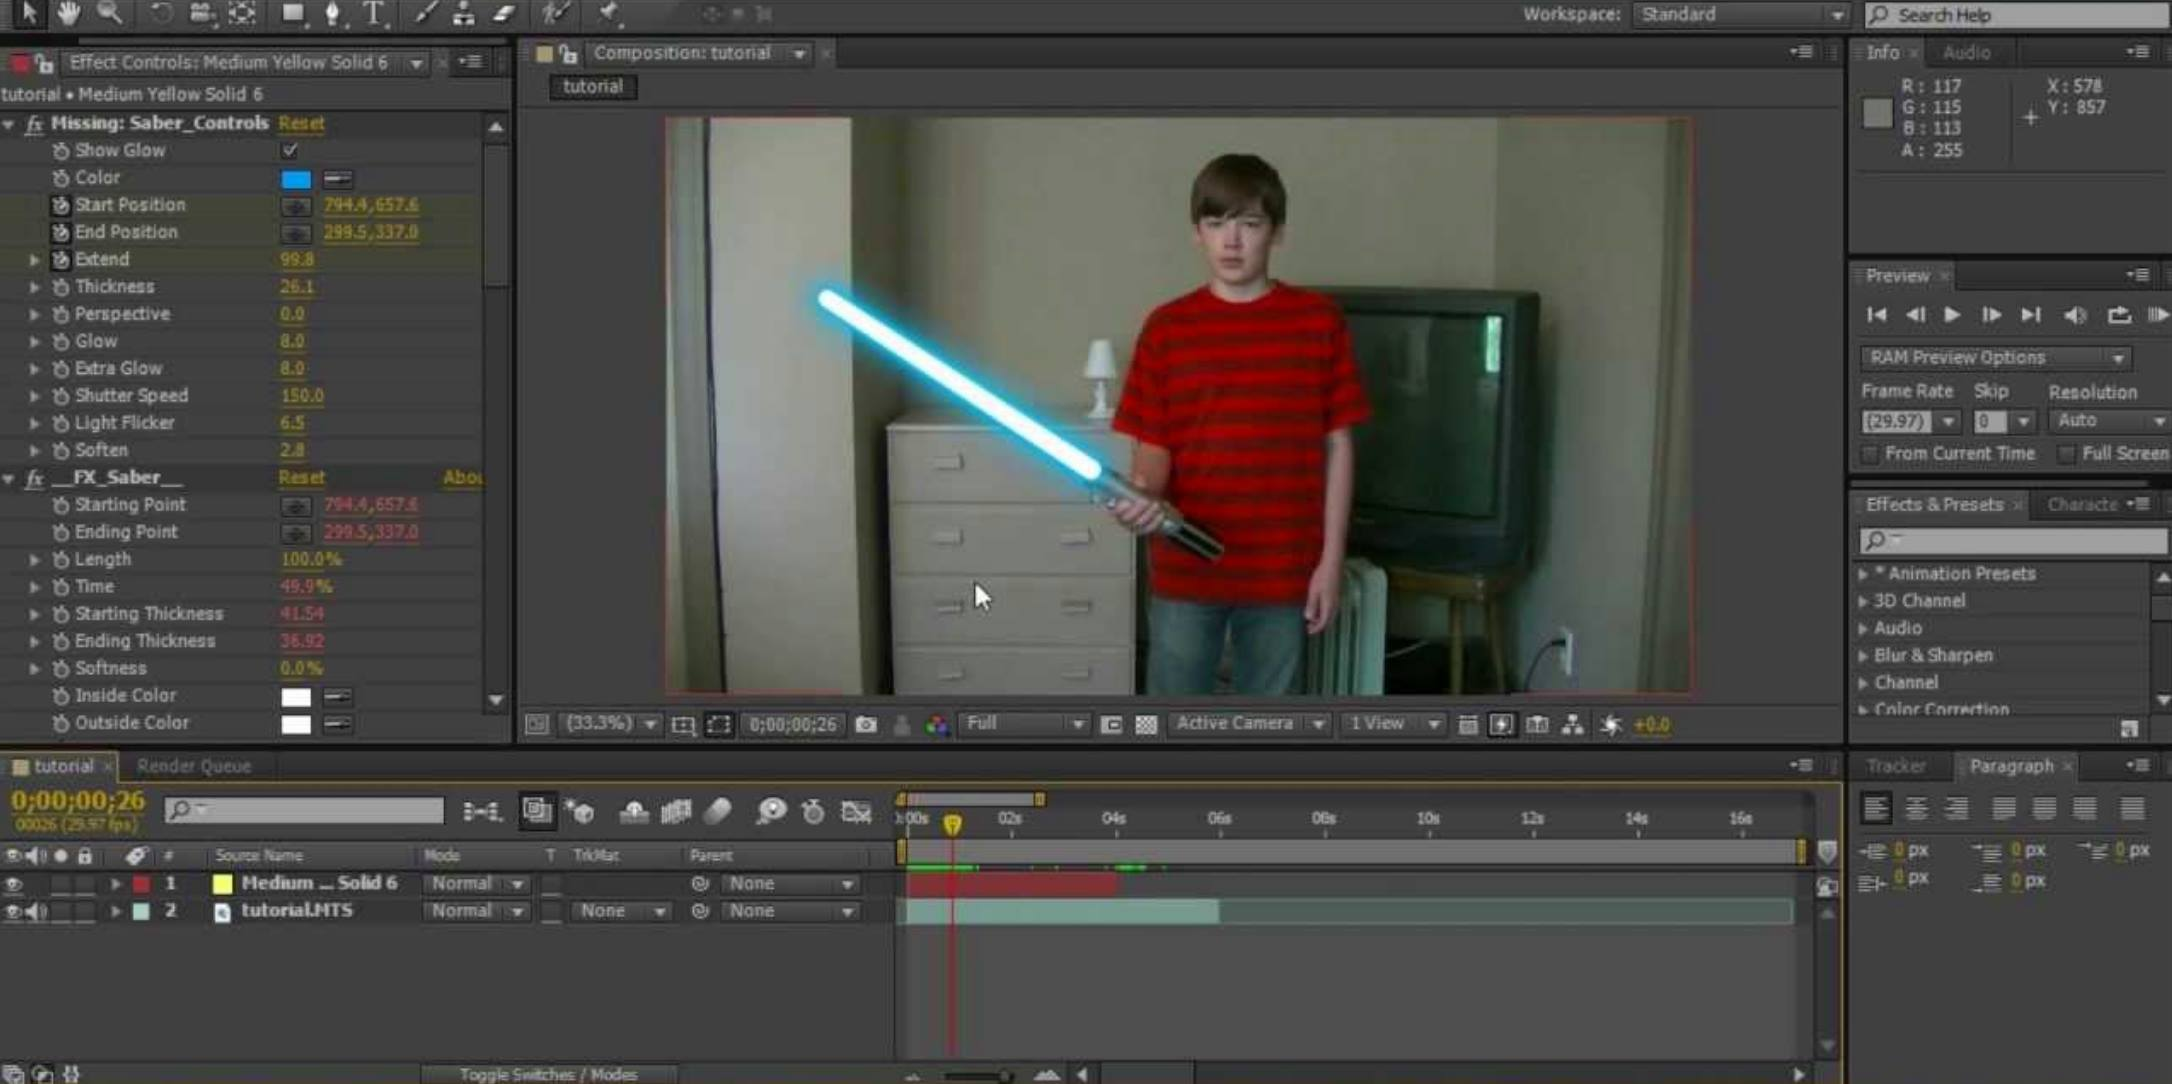 Visual effects for zoom